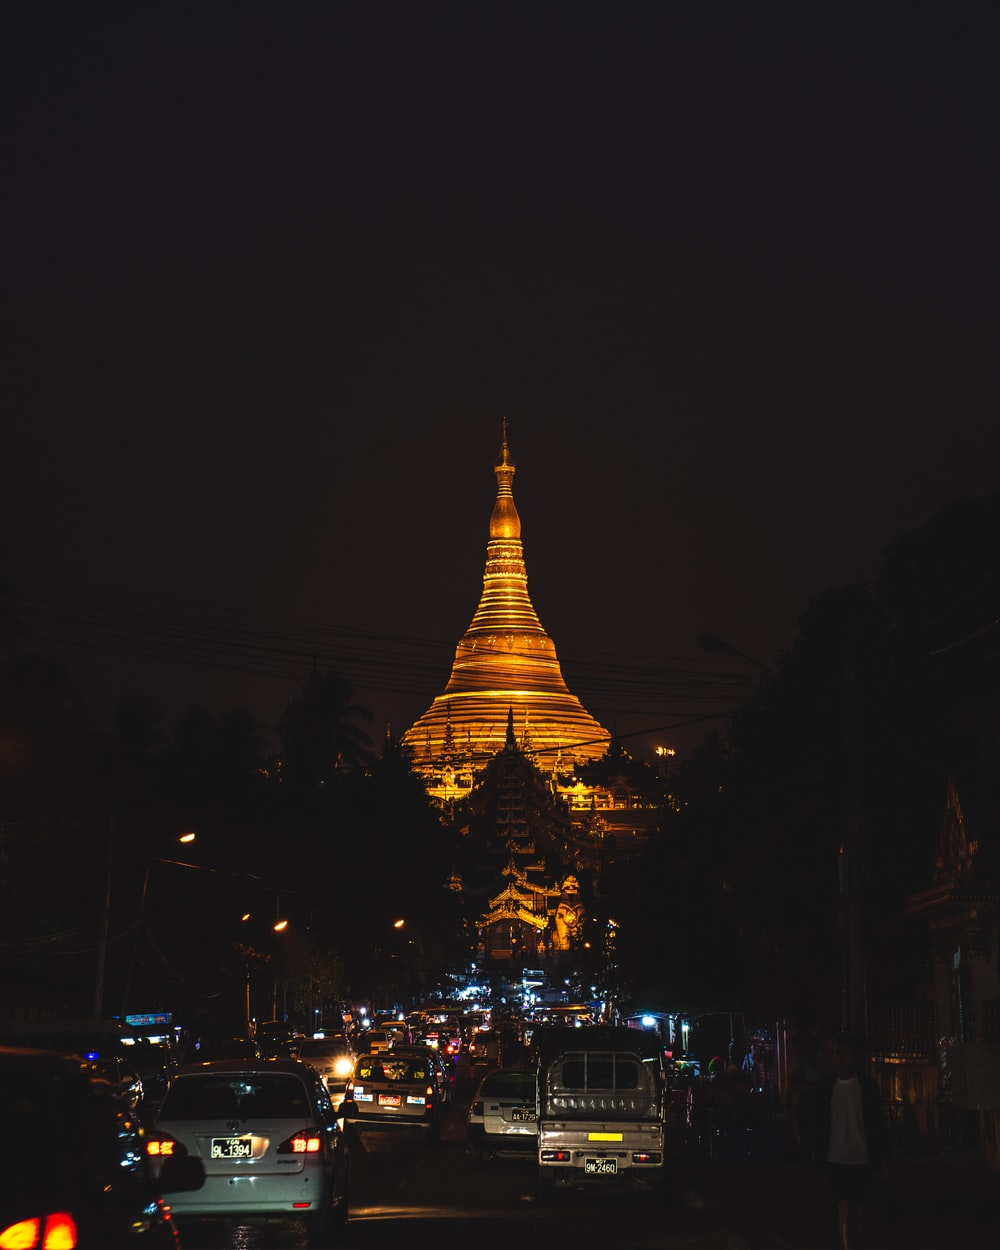 yellow lighted tower during night time